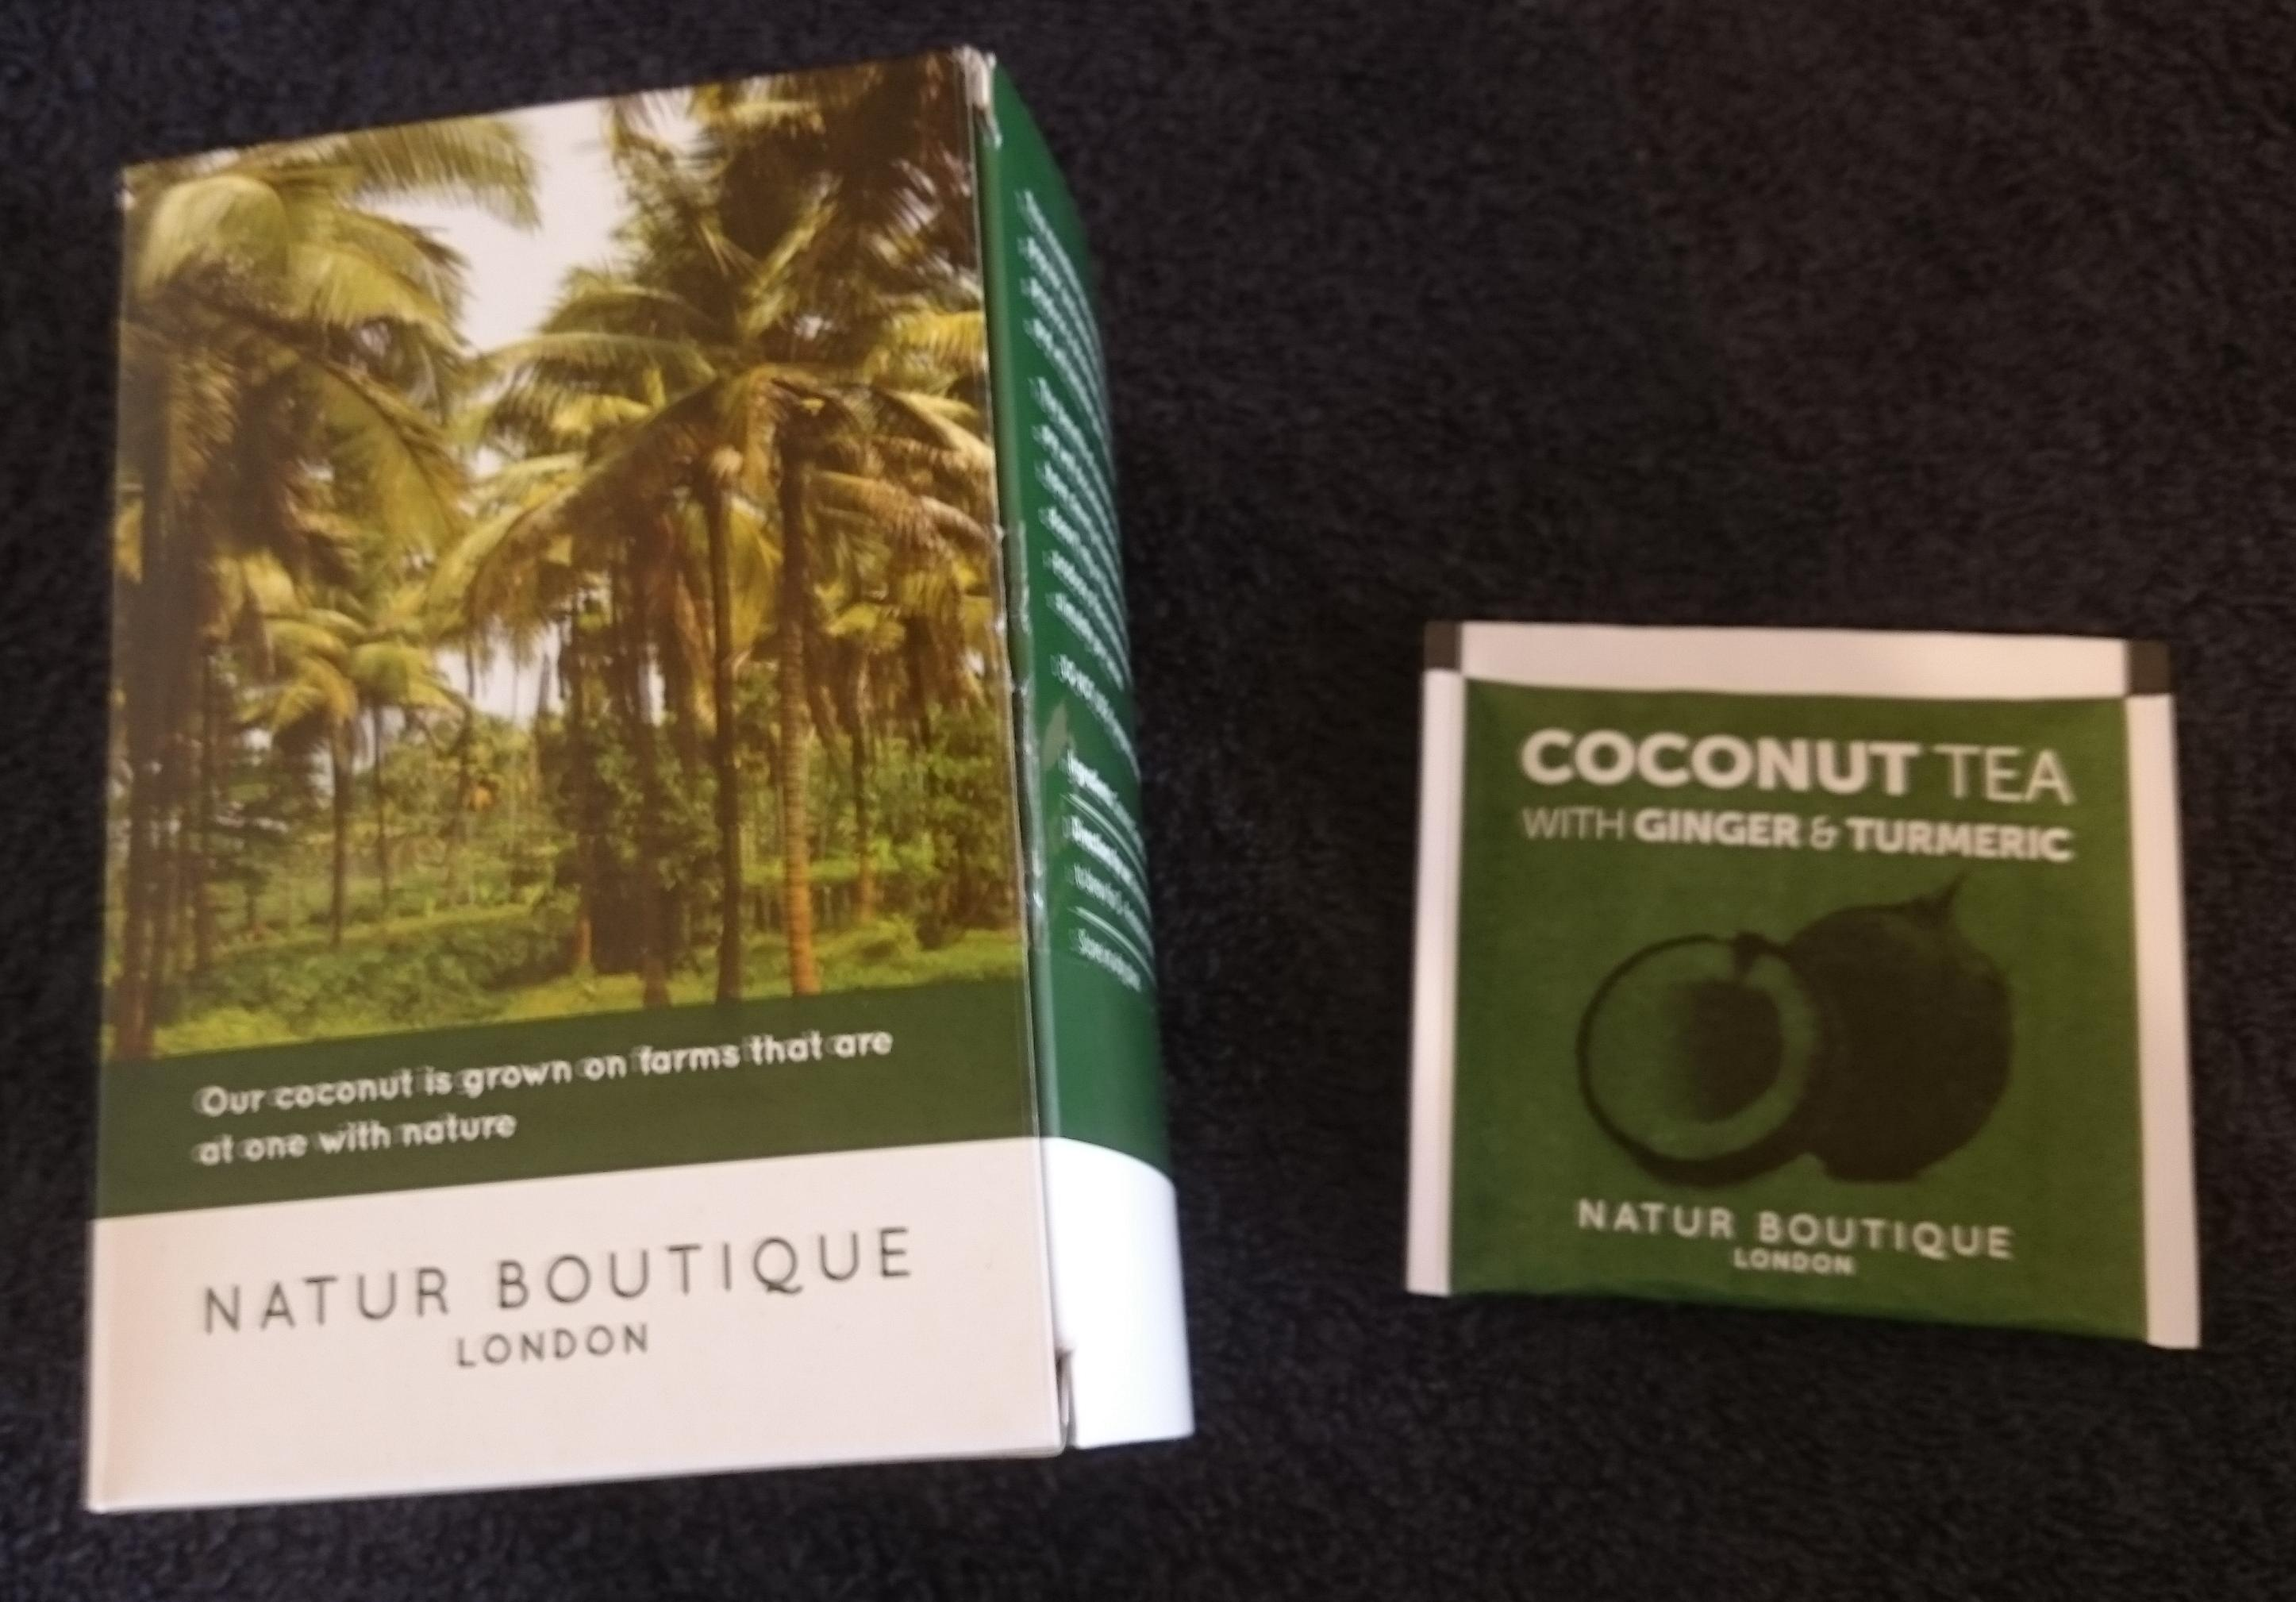 Natur Boutique's Coconut Tea with Ginger and Turmeric box